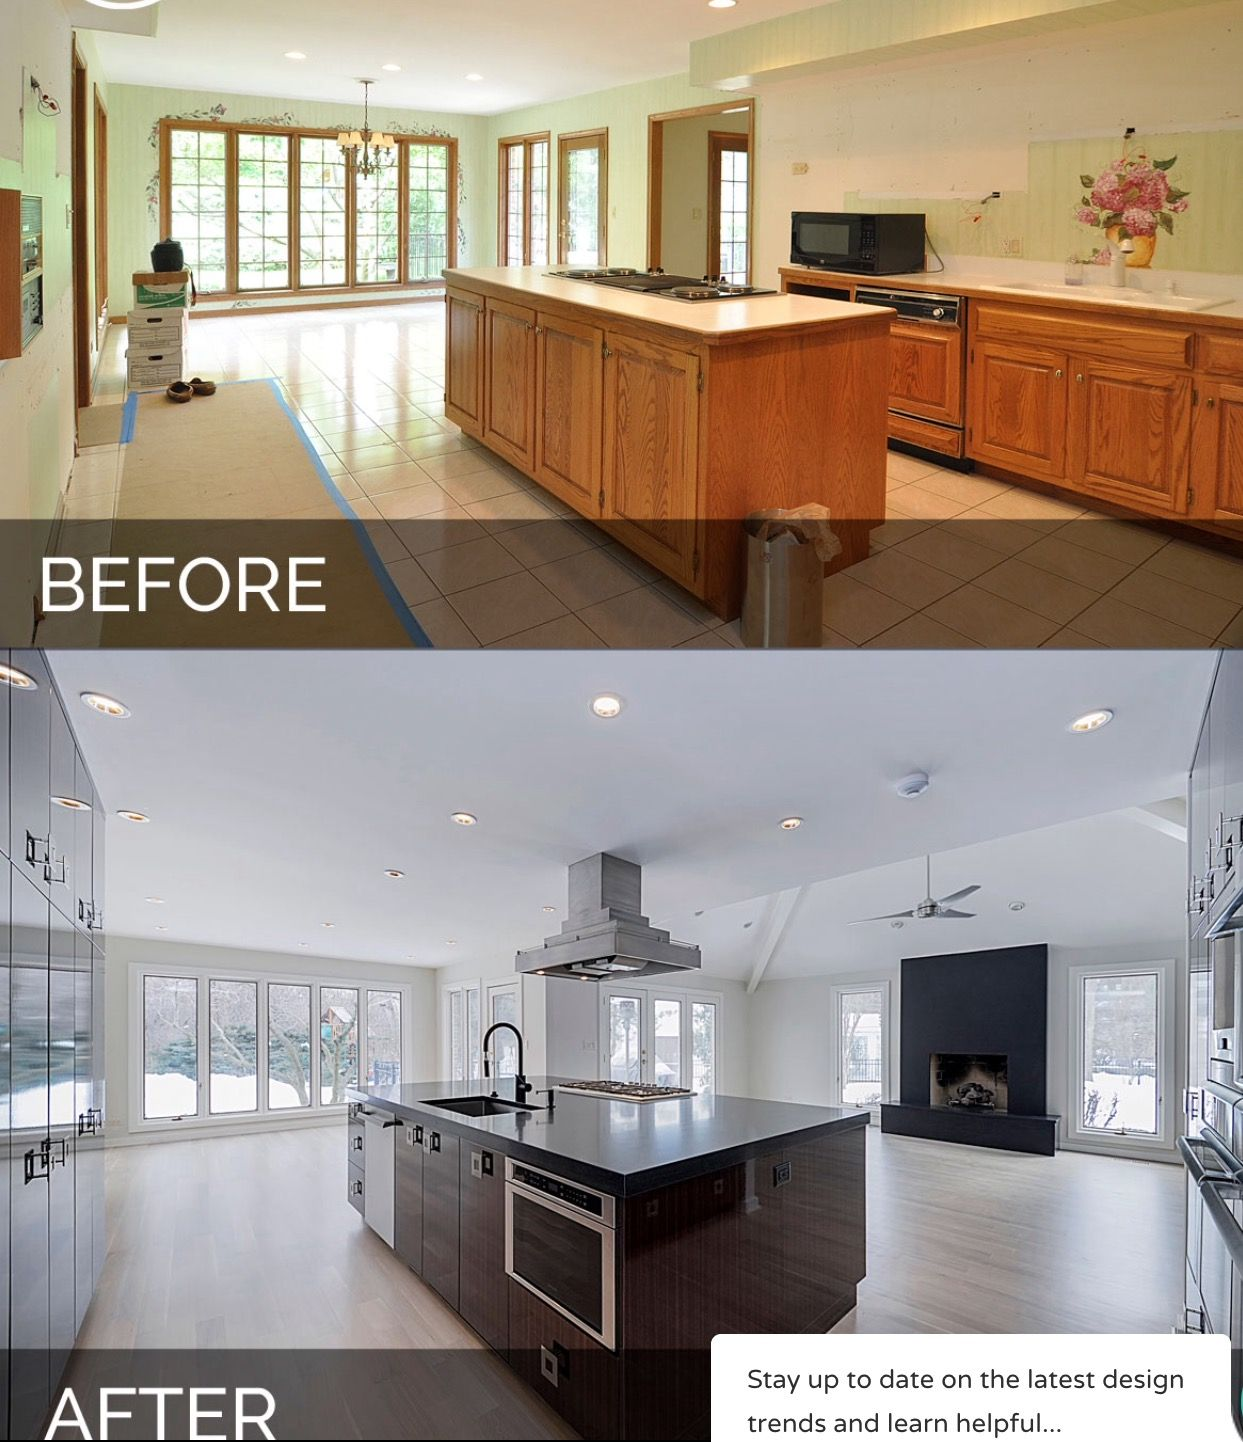 New Kitchen Before And After: Pin By Teresa McKee Heart At Home Interiors On HeartatHome